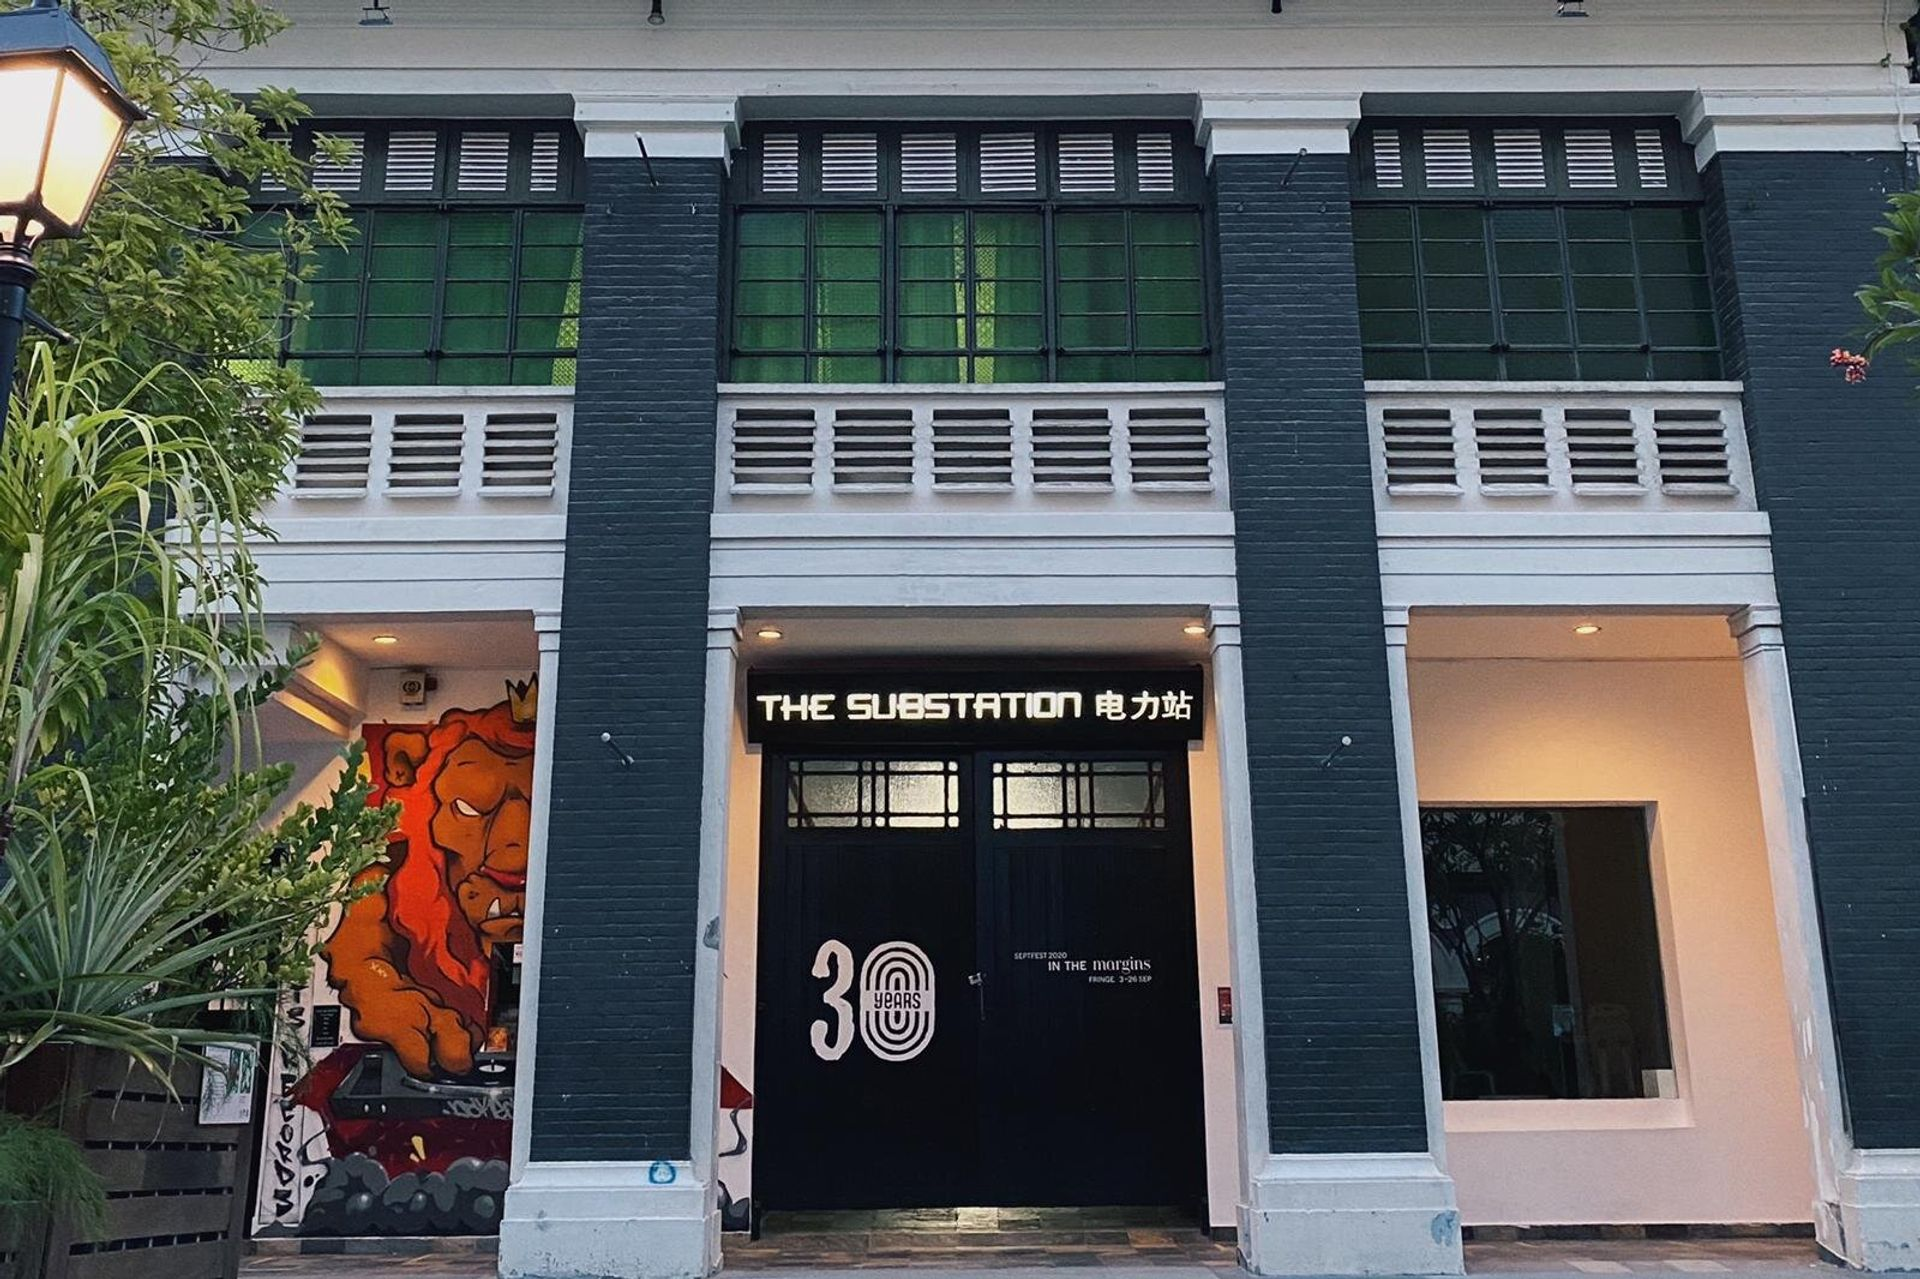 Singapore arts centre The Substation is closing after 30 years at 45 Armenian Street Photo: The Substation